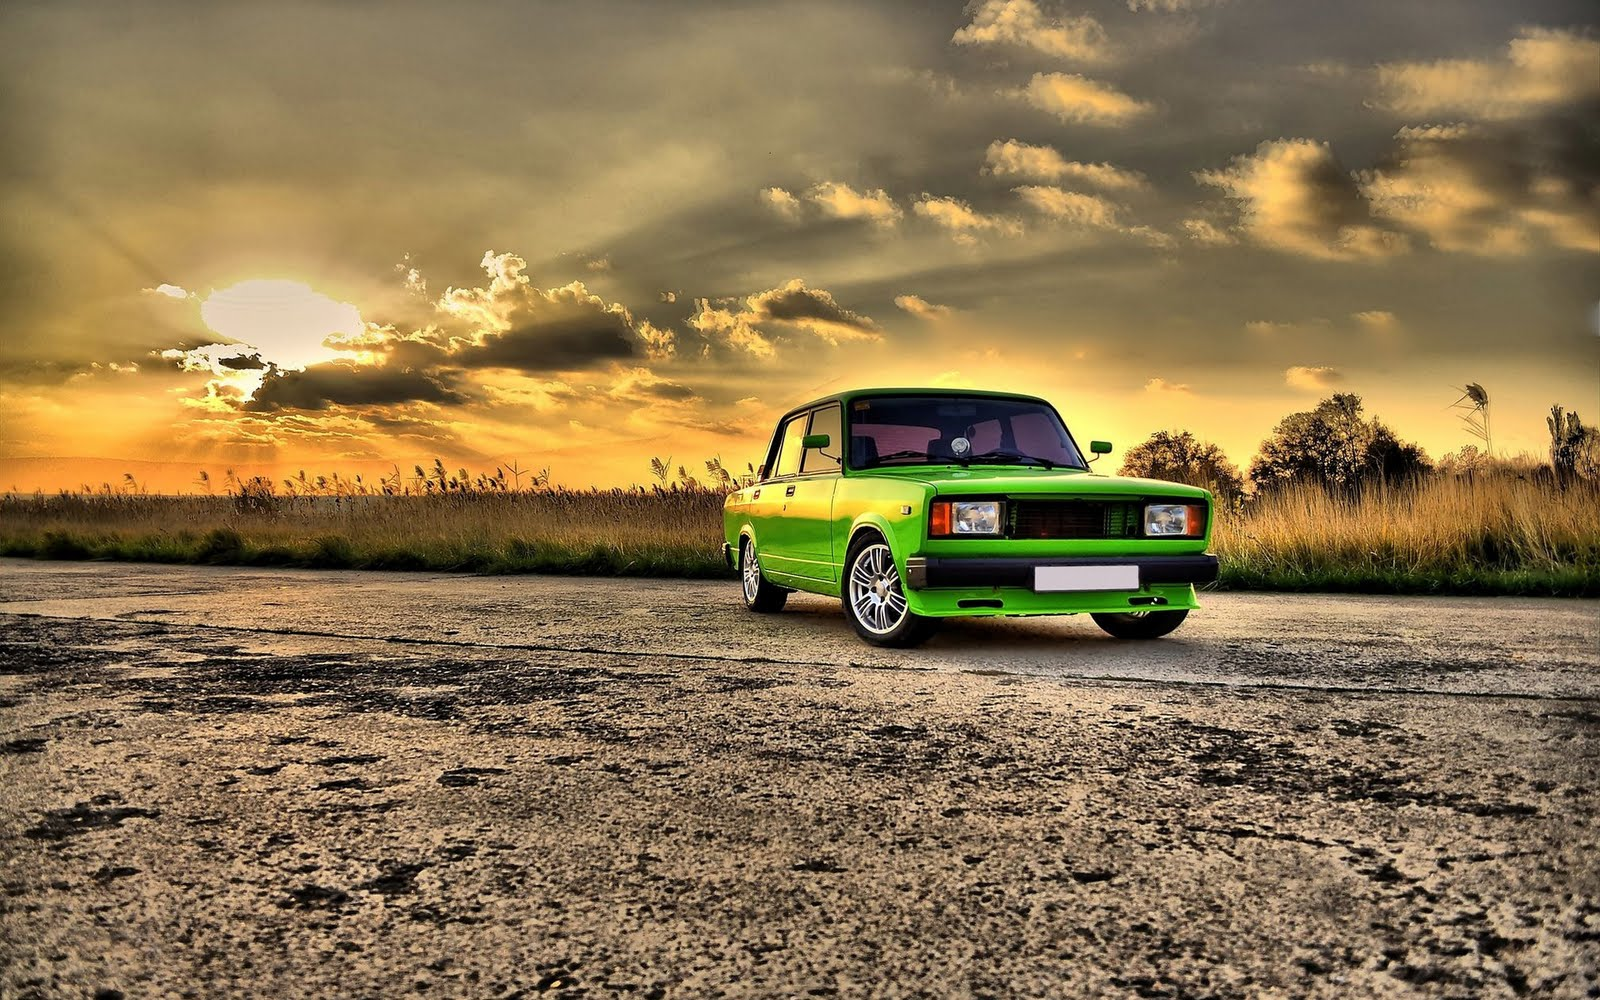 Awesome HD Wallpaper Collection: Super Green Car